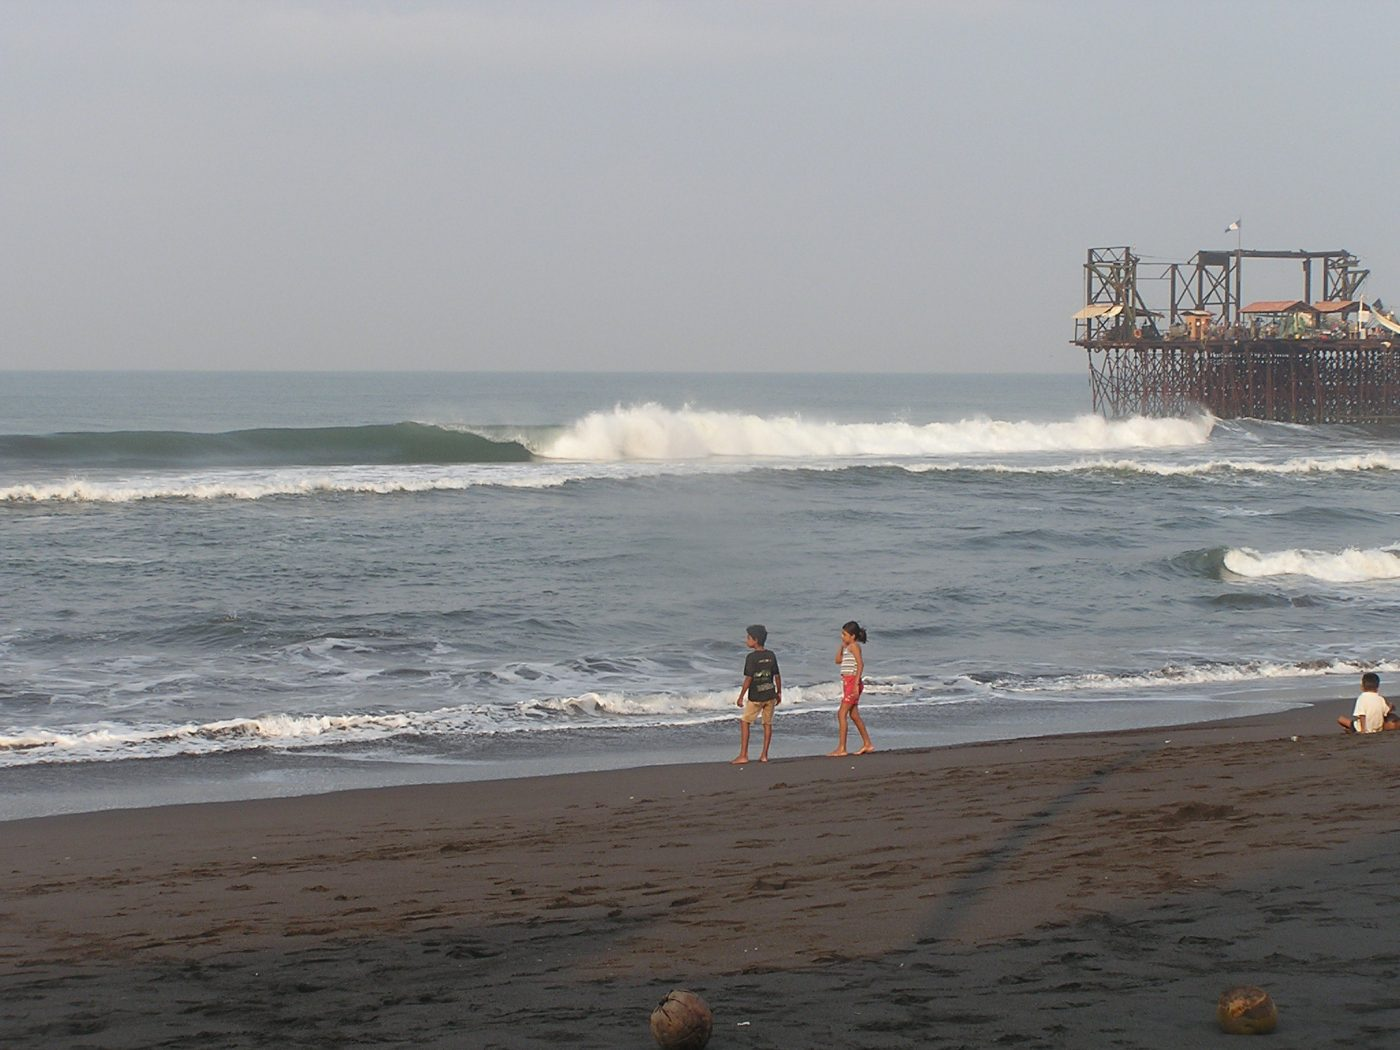 guatemala surfing - underrated destination in Central America